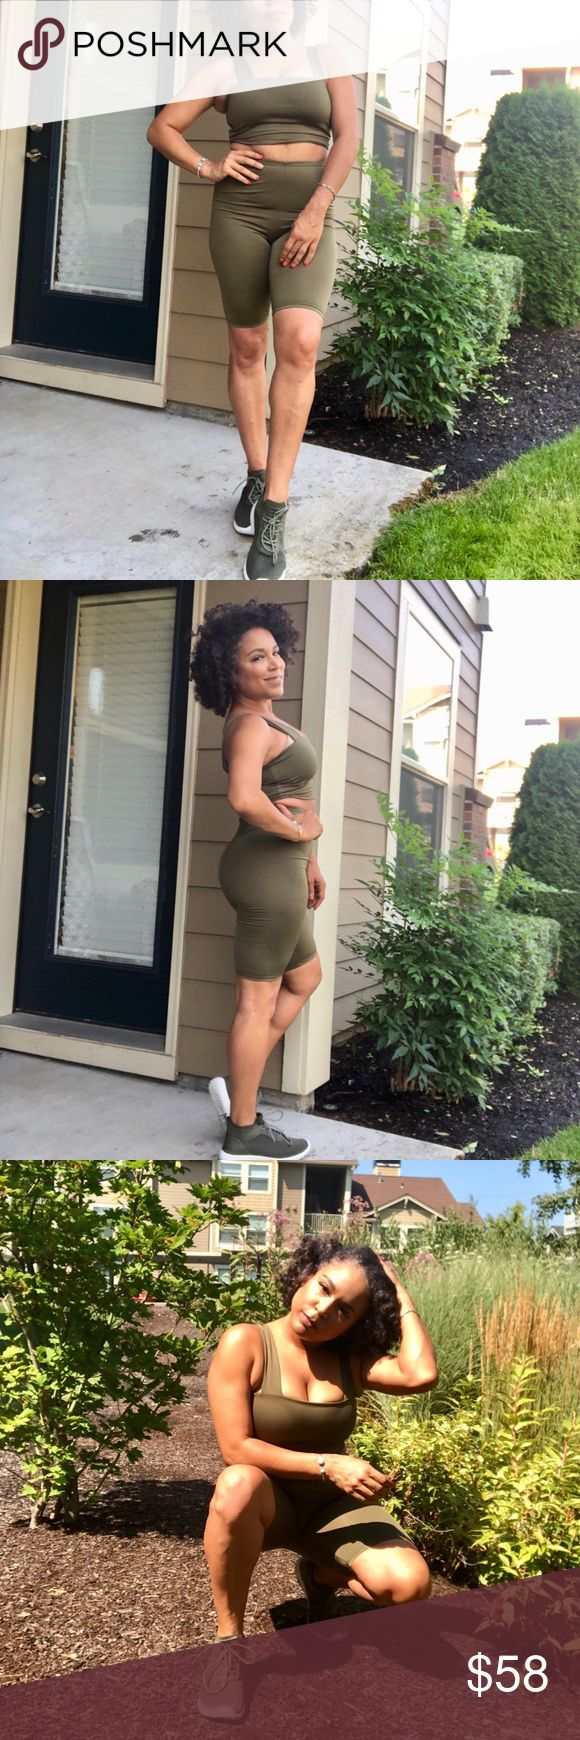 Olive green square neck crop top and biker shorts. Sleeveless square neckline cr...